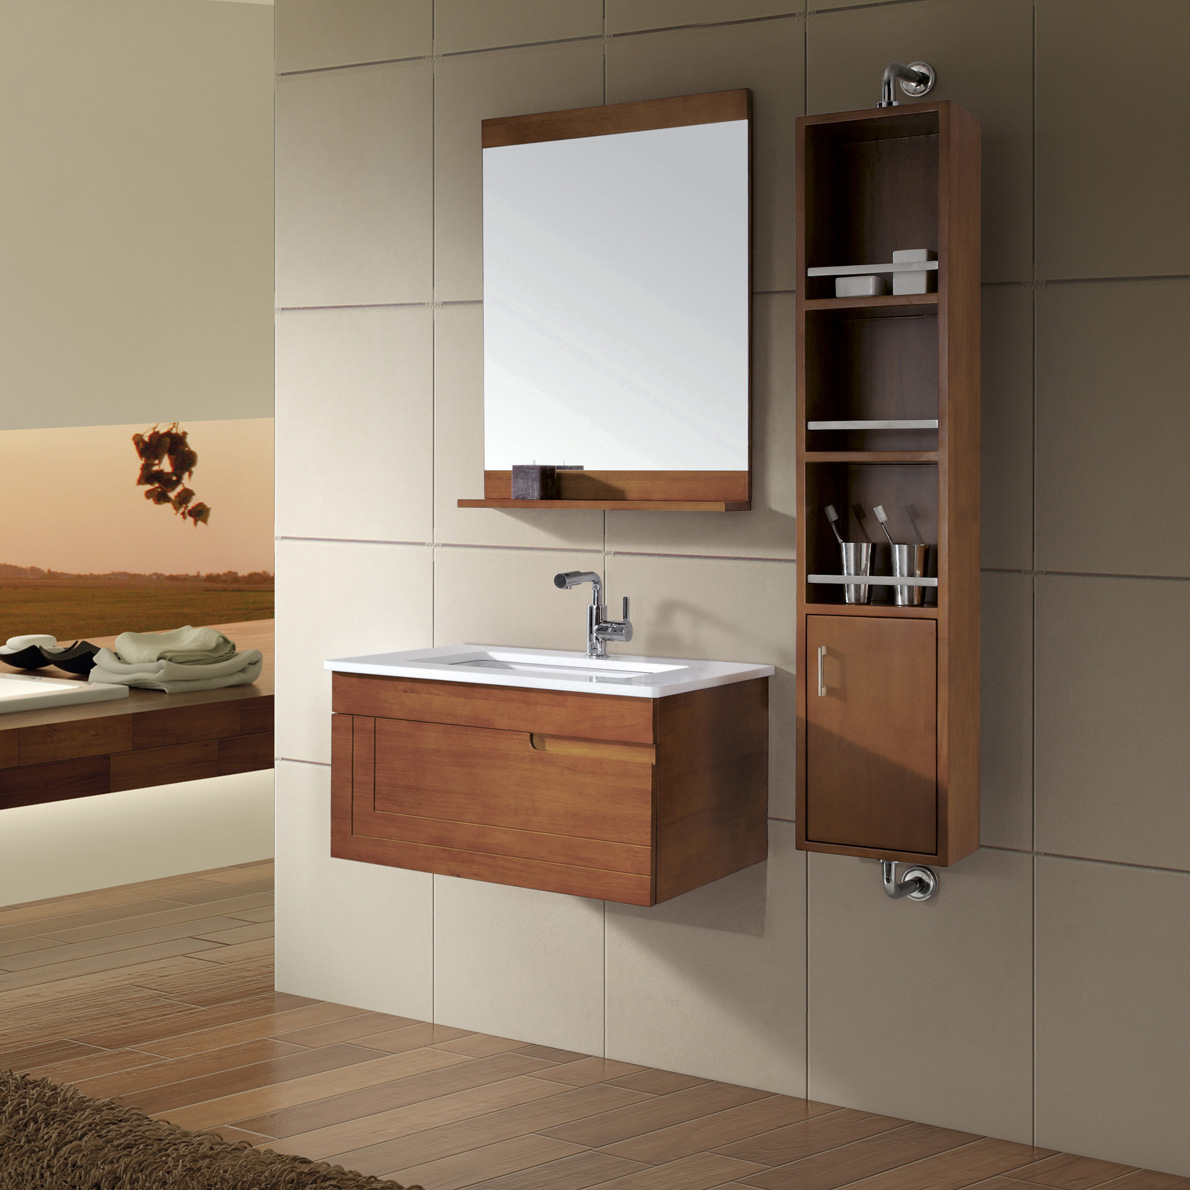 China bathroom cabinet vanity kl269 china bathroom for Furniture ideas for bathroom